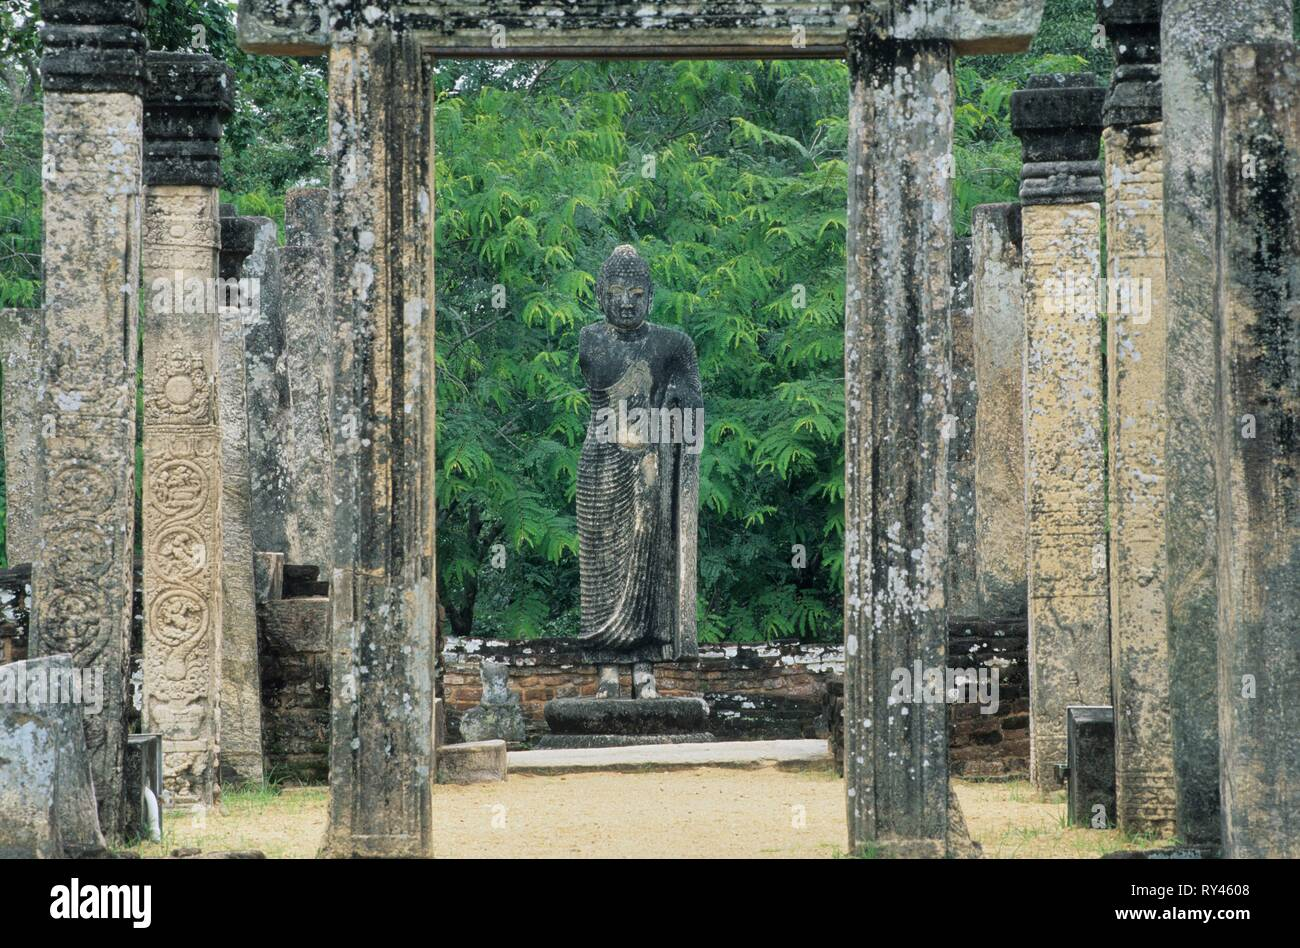 Atadage, Terrace of the Tooth relic, Polonnaruwa, Sri Lanka - Stock Image